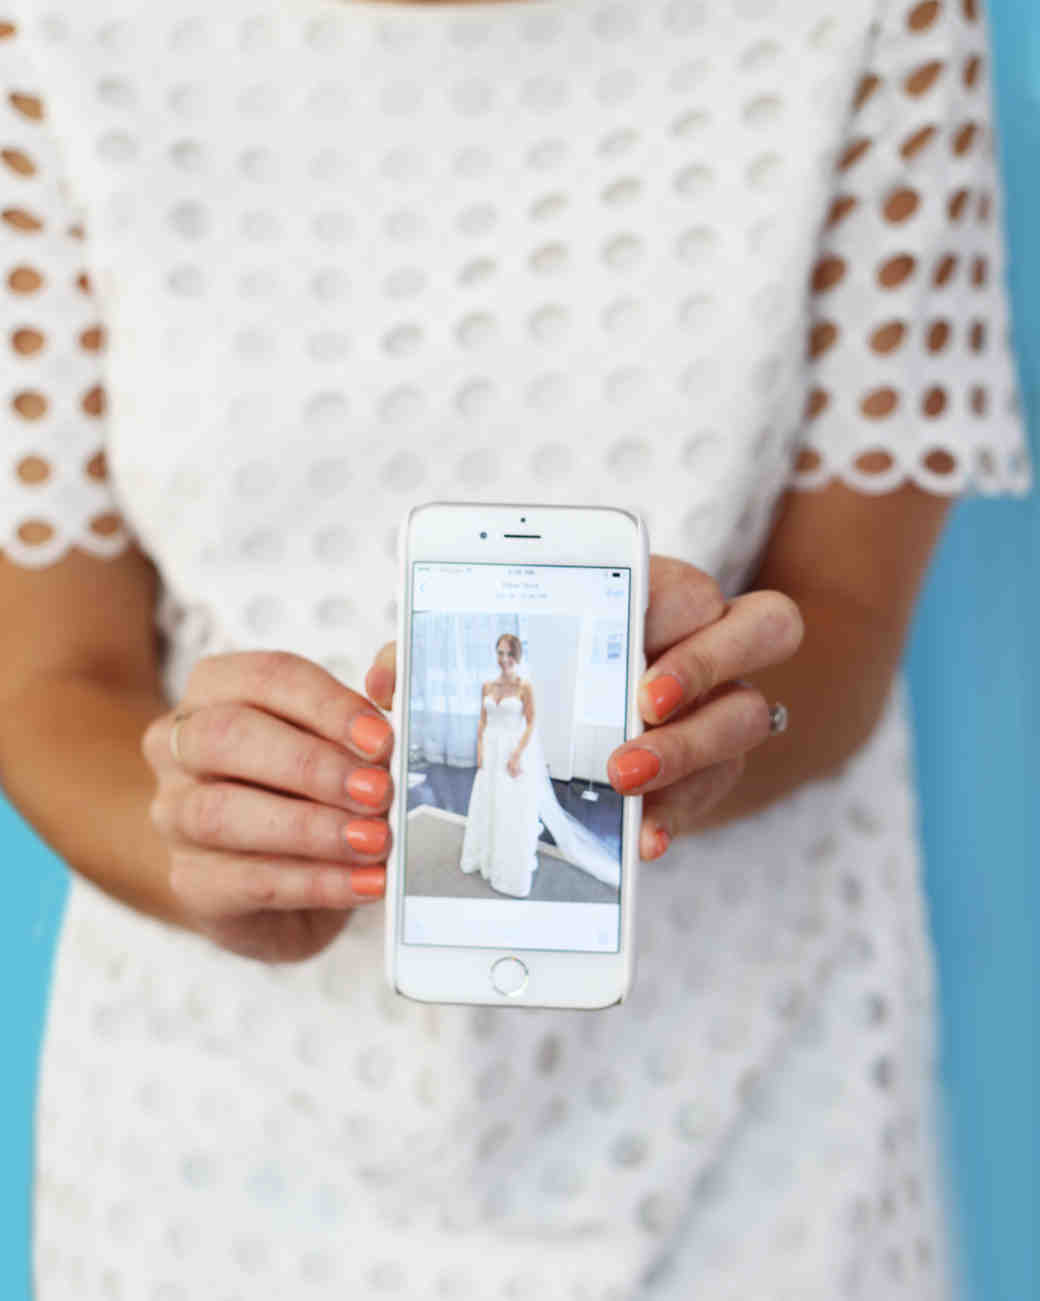 f3afd1cd12e5 7 Unexpected Tips to Find the Wedding Dress of Your Dreams | Martha Stewart  Weddings